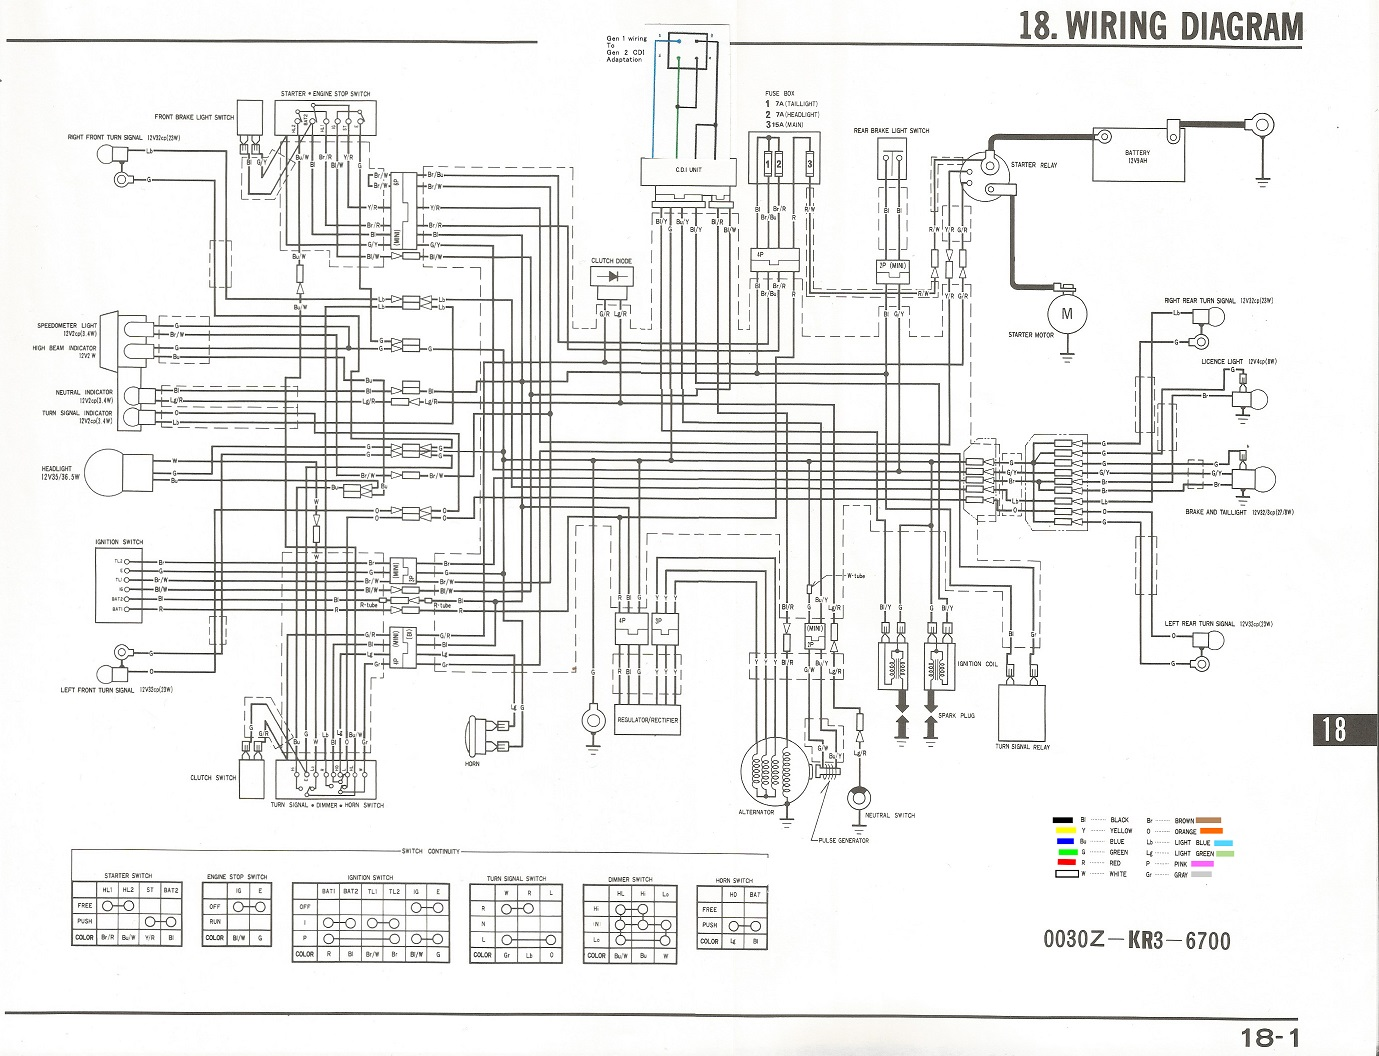 Honda Rebel 1985-1987 Wiring Diagram | Honda Rebel Forum | Rebel 450 Wiring Diagram |  | Honda Rebel Forum